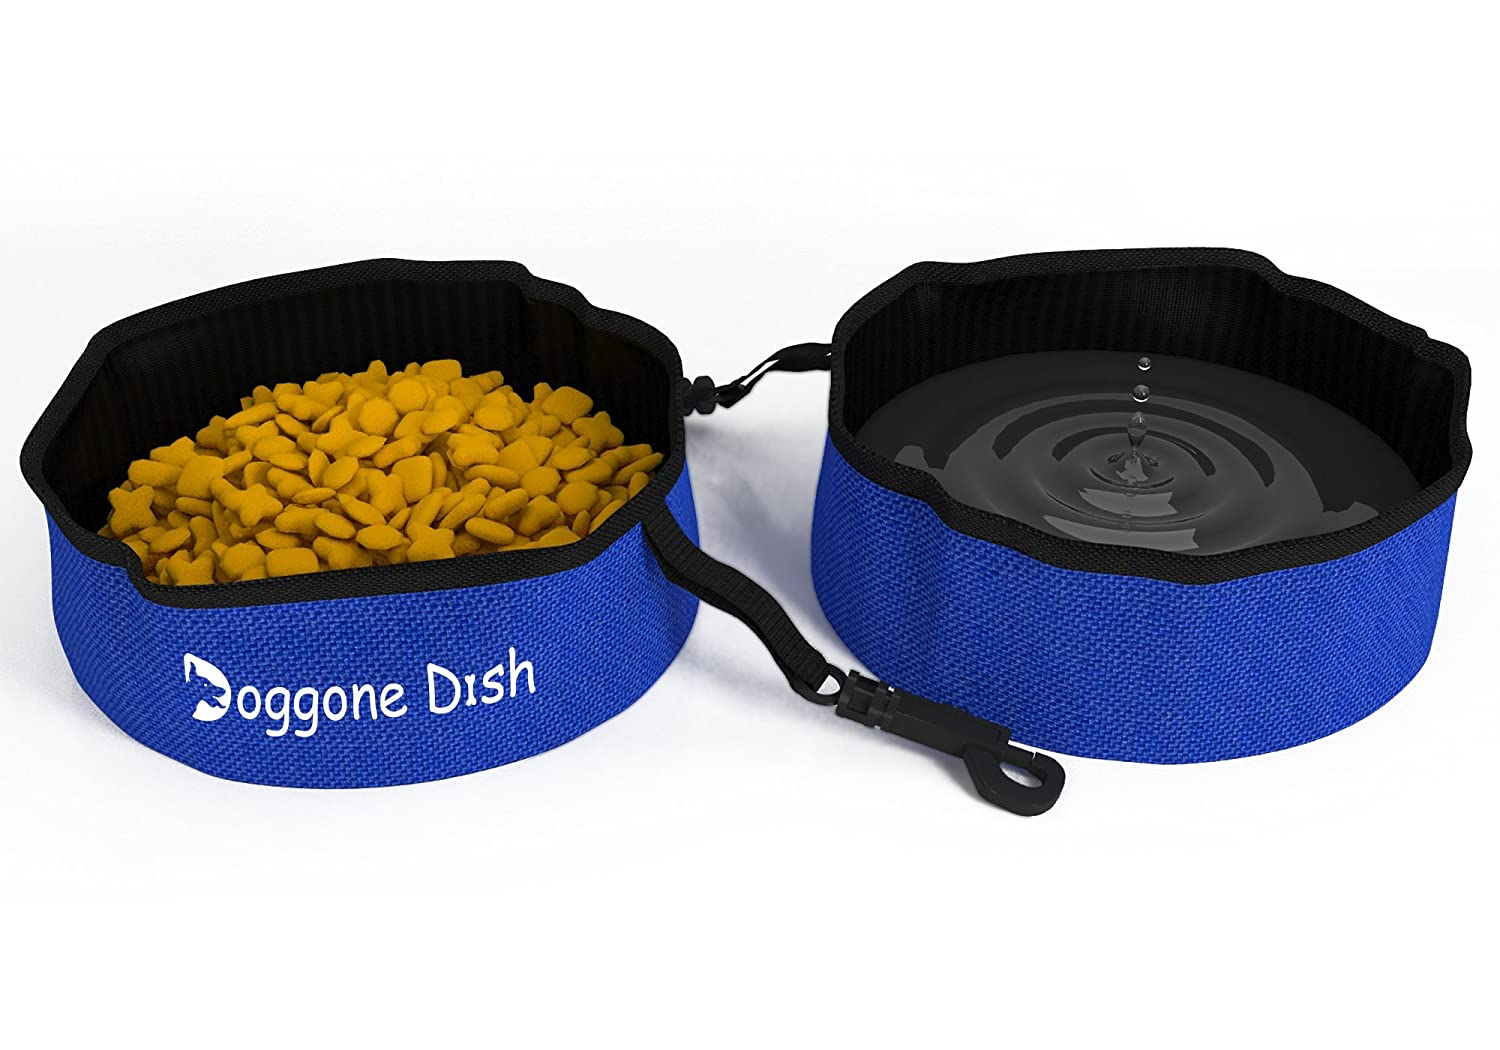 Collapsible Travel Pet Bowl 2 Pack for Water and Food, Set of 2 Portable Dog or Cat Bowls by Dog-Gone Dish